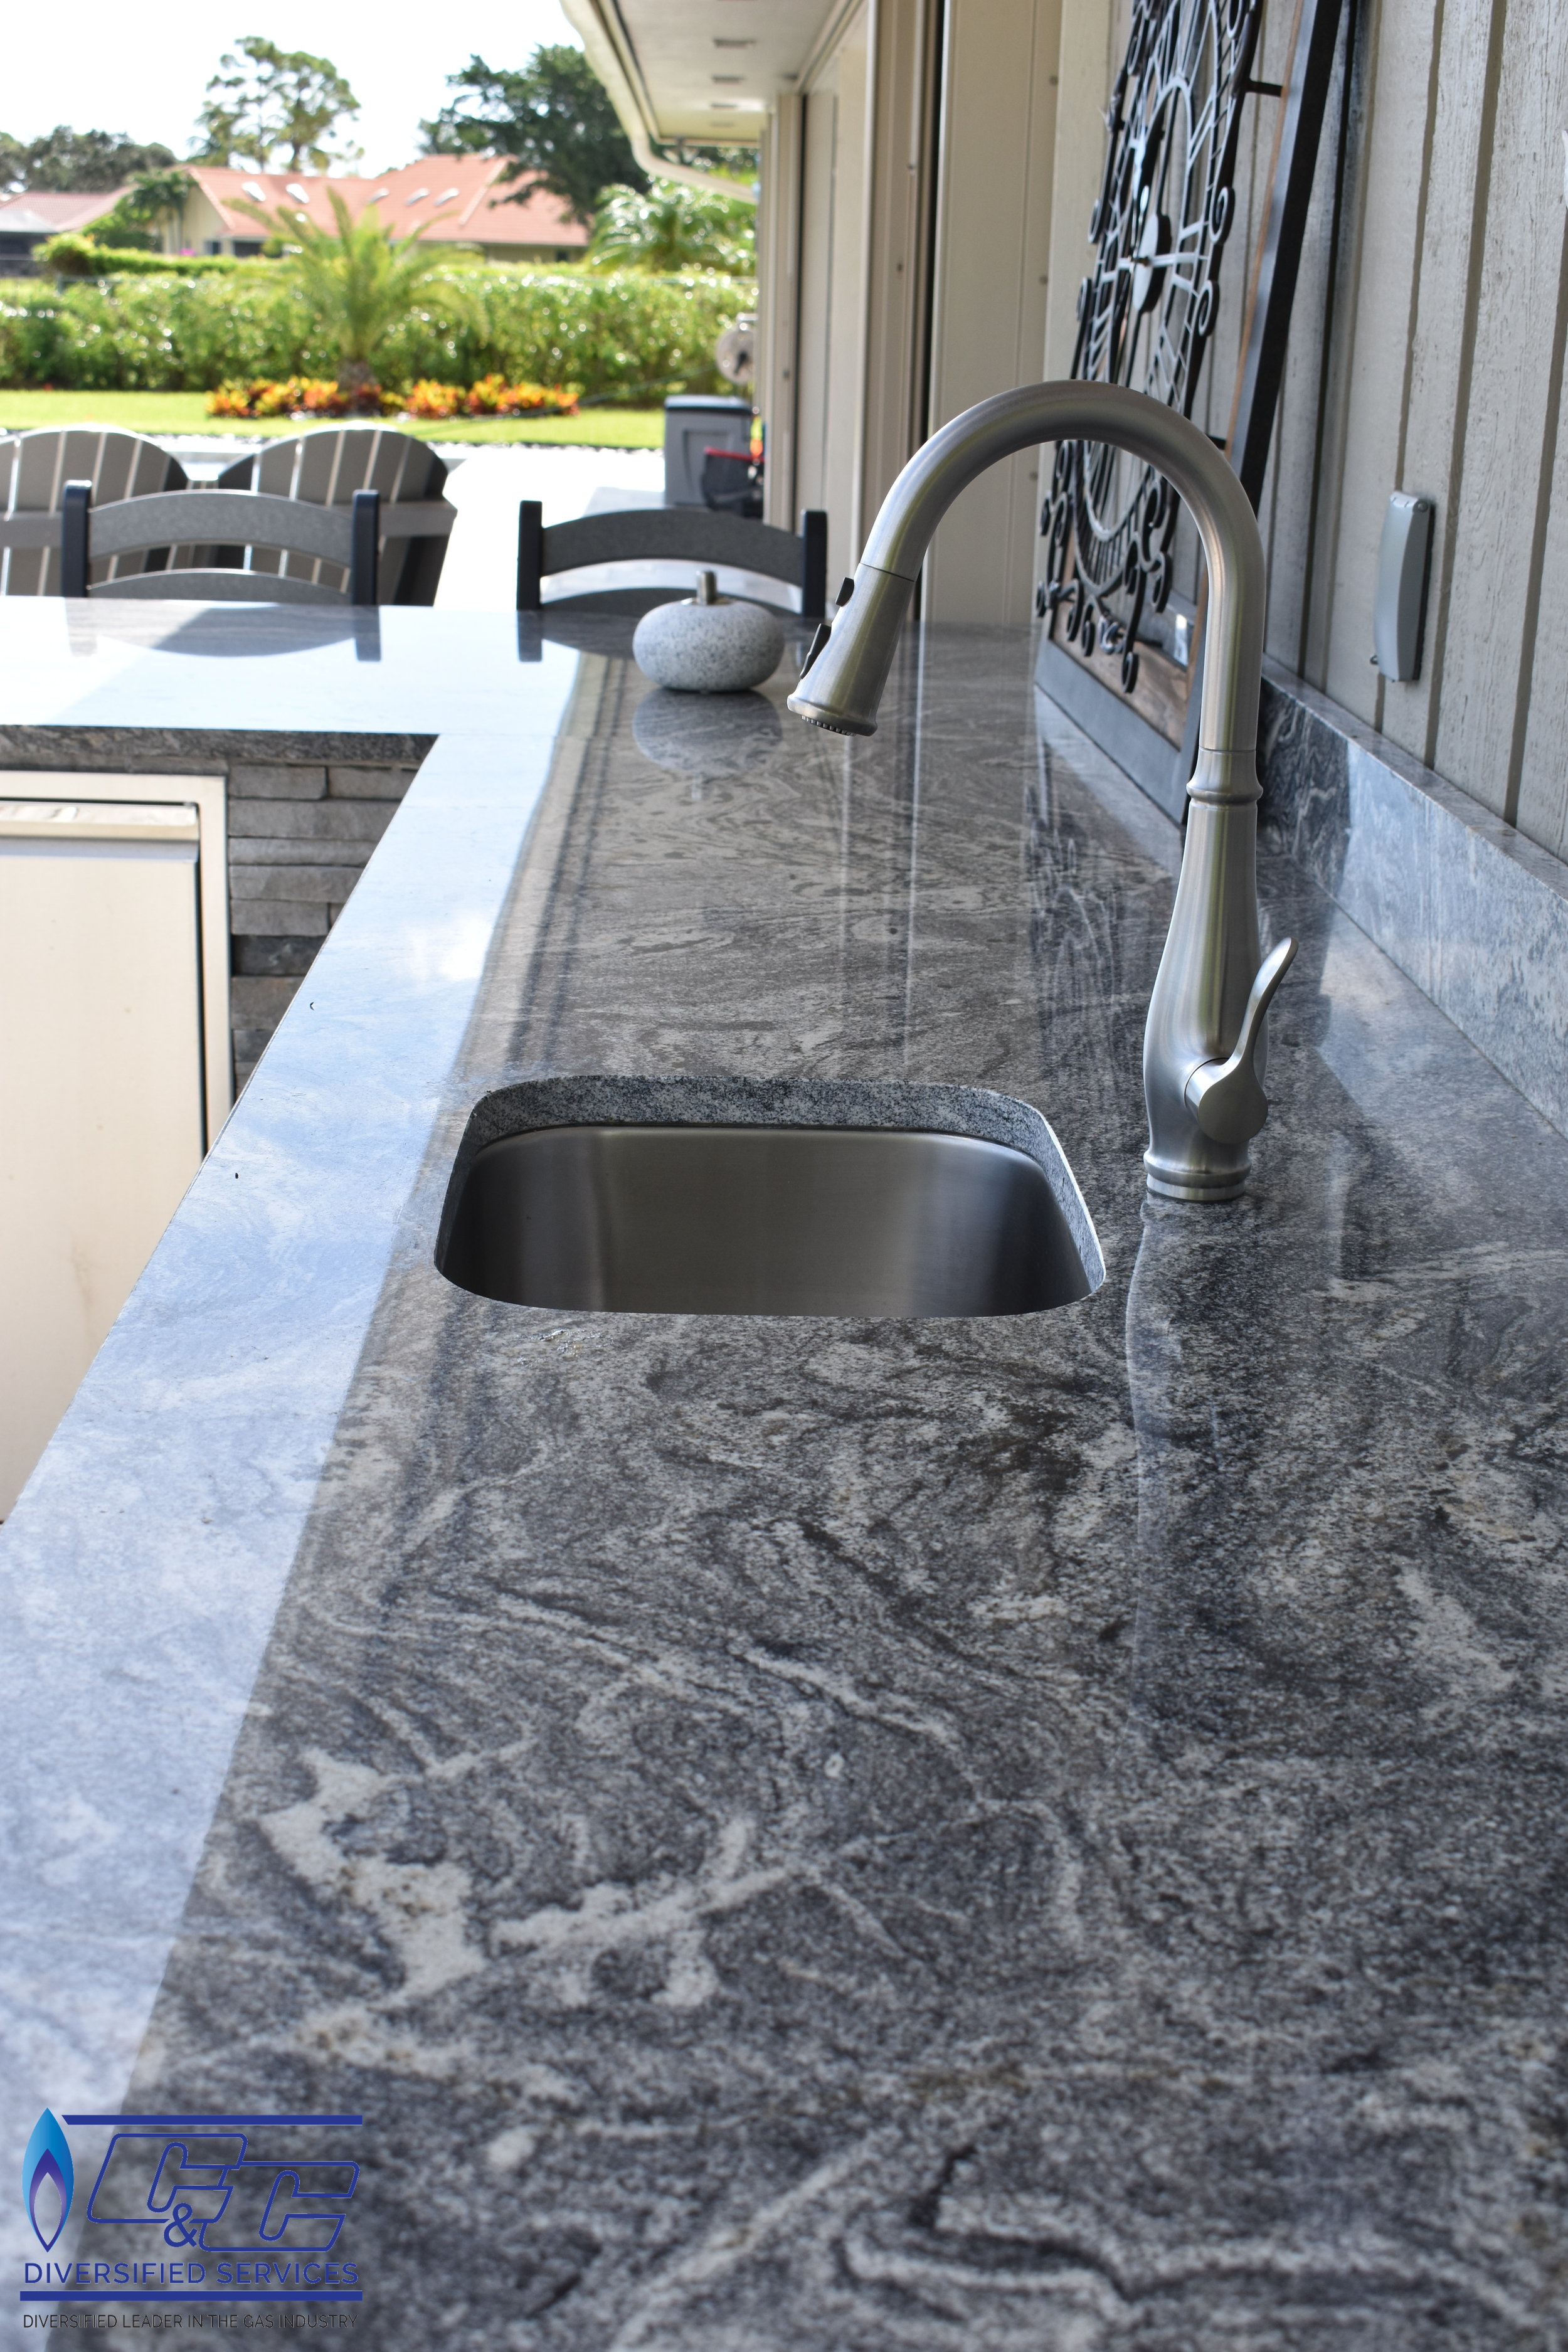 Undermount Stainless Steel Sink w/ Faucet